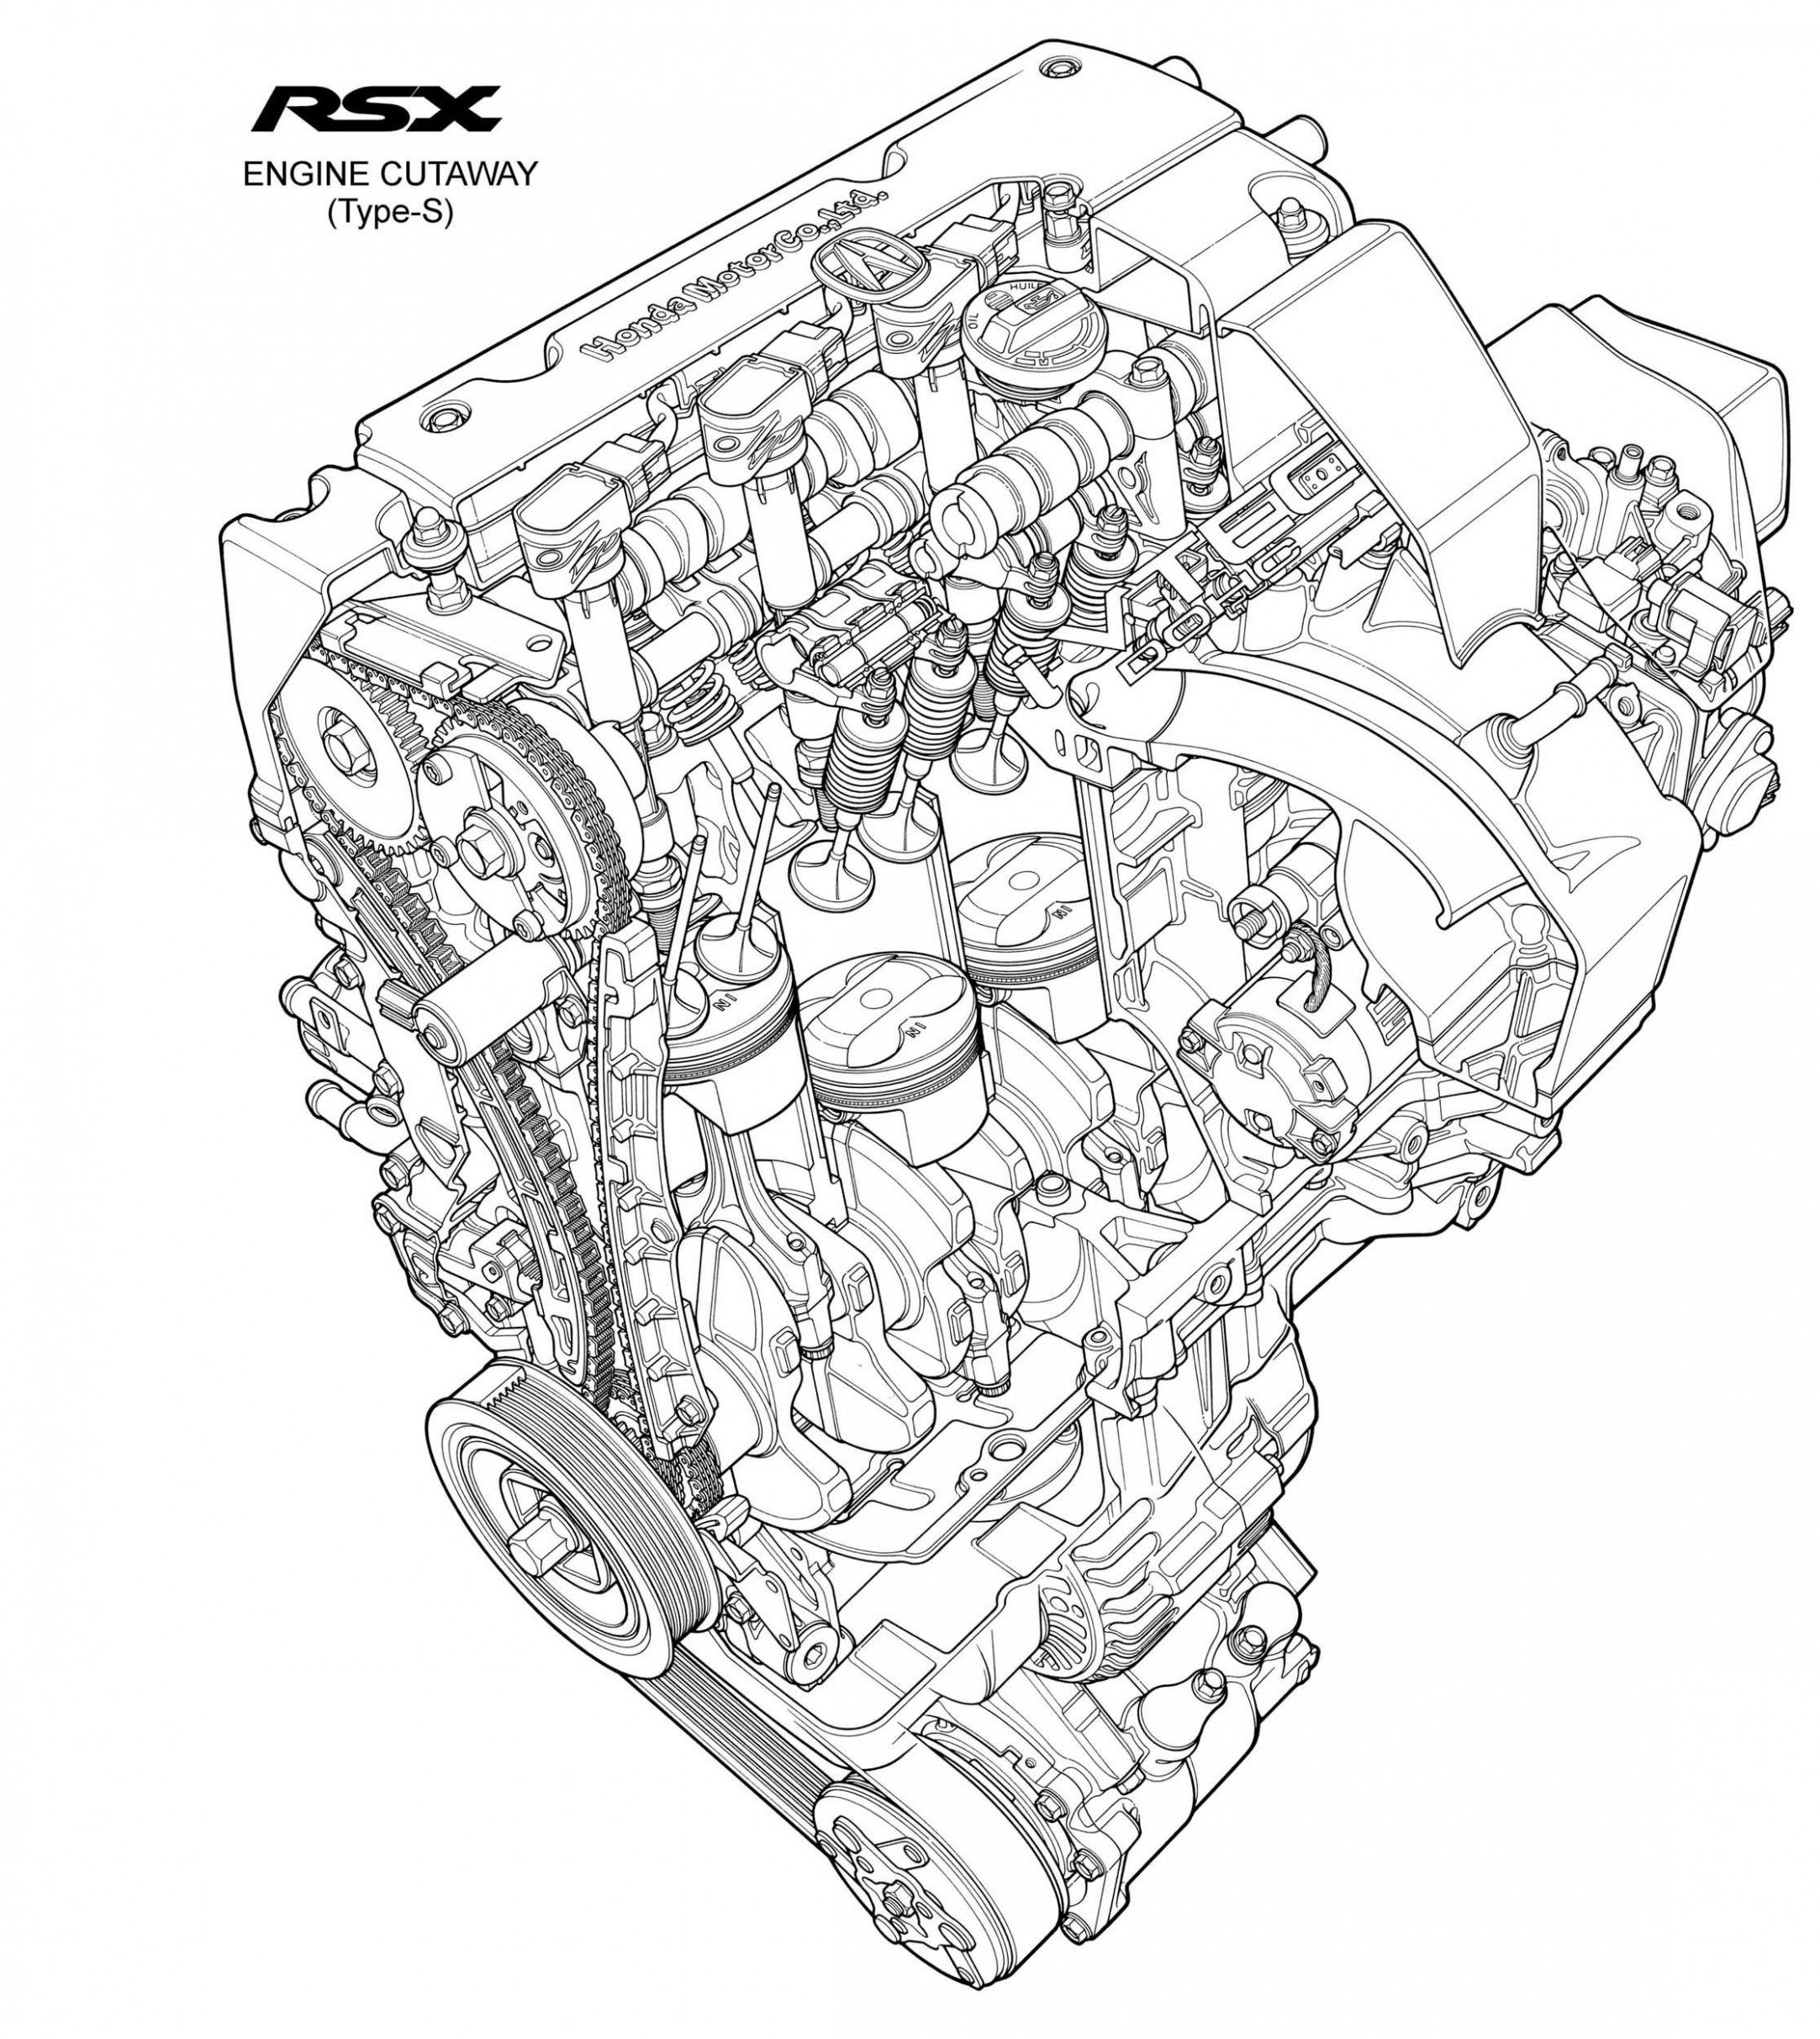 Dc7 Engine Bay Diagram in 2020 | Acura rsx type s, Acura rsx, AcuraPinterest